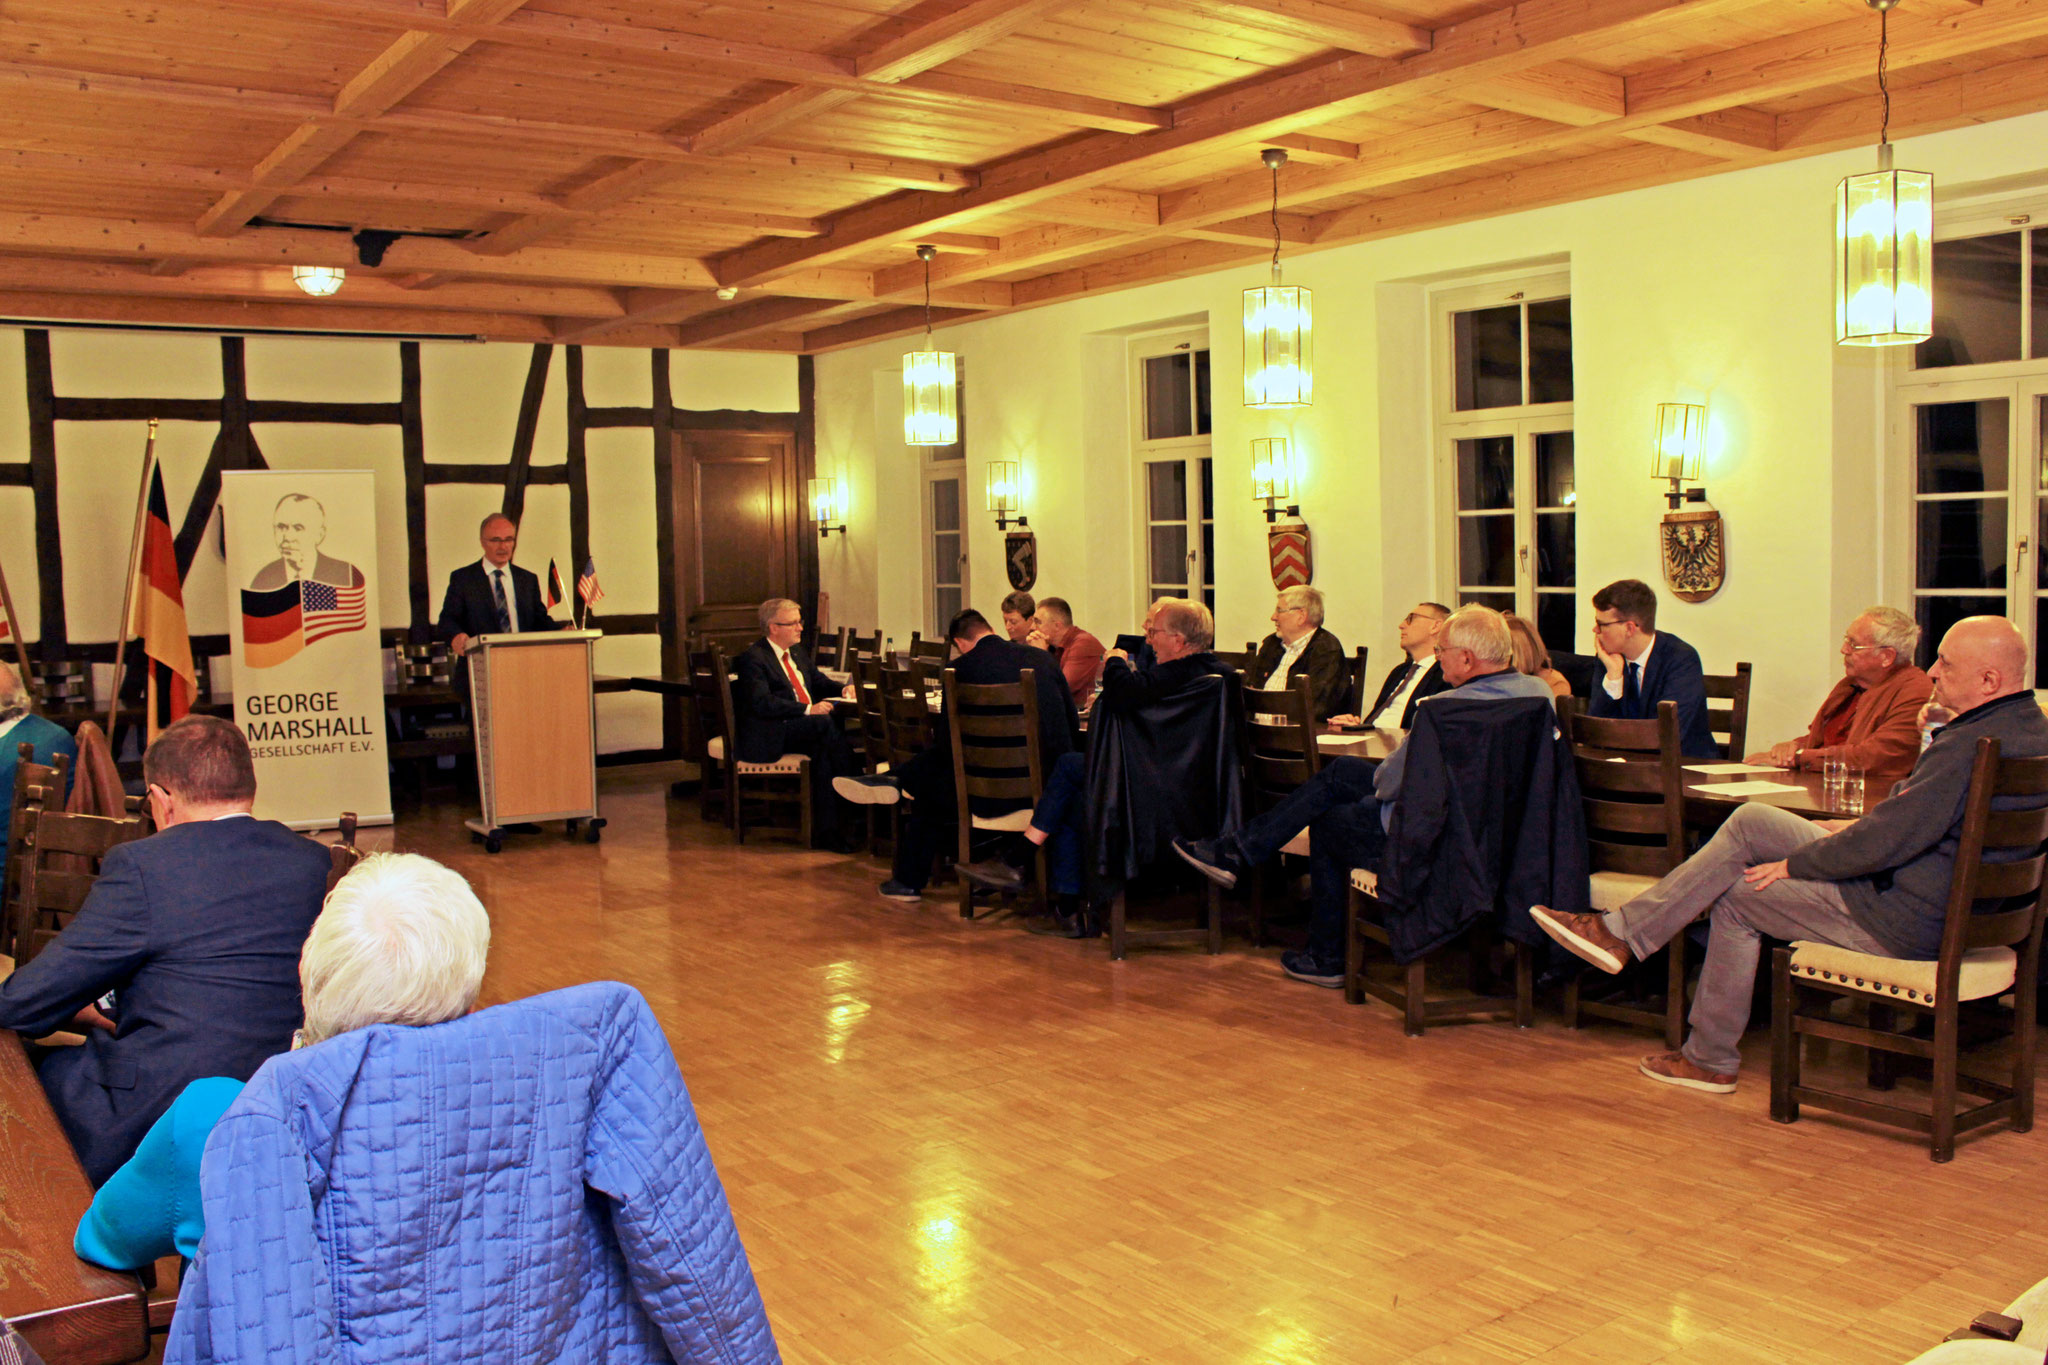 The event in the Alter Posthof in Hattersheim was hosted by the George Marshall Society